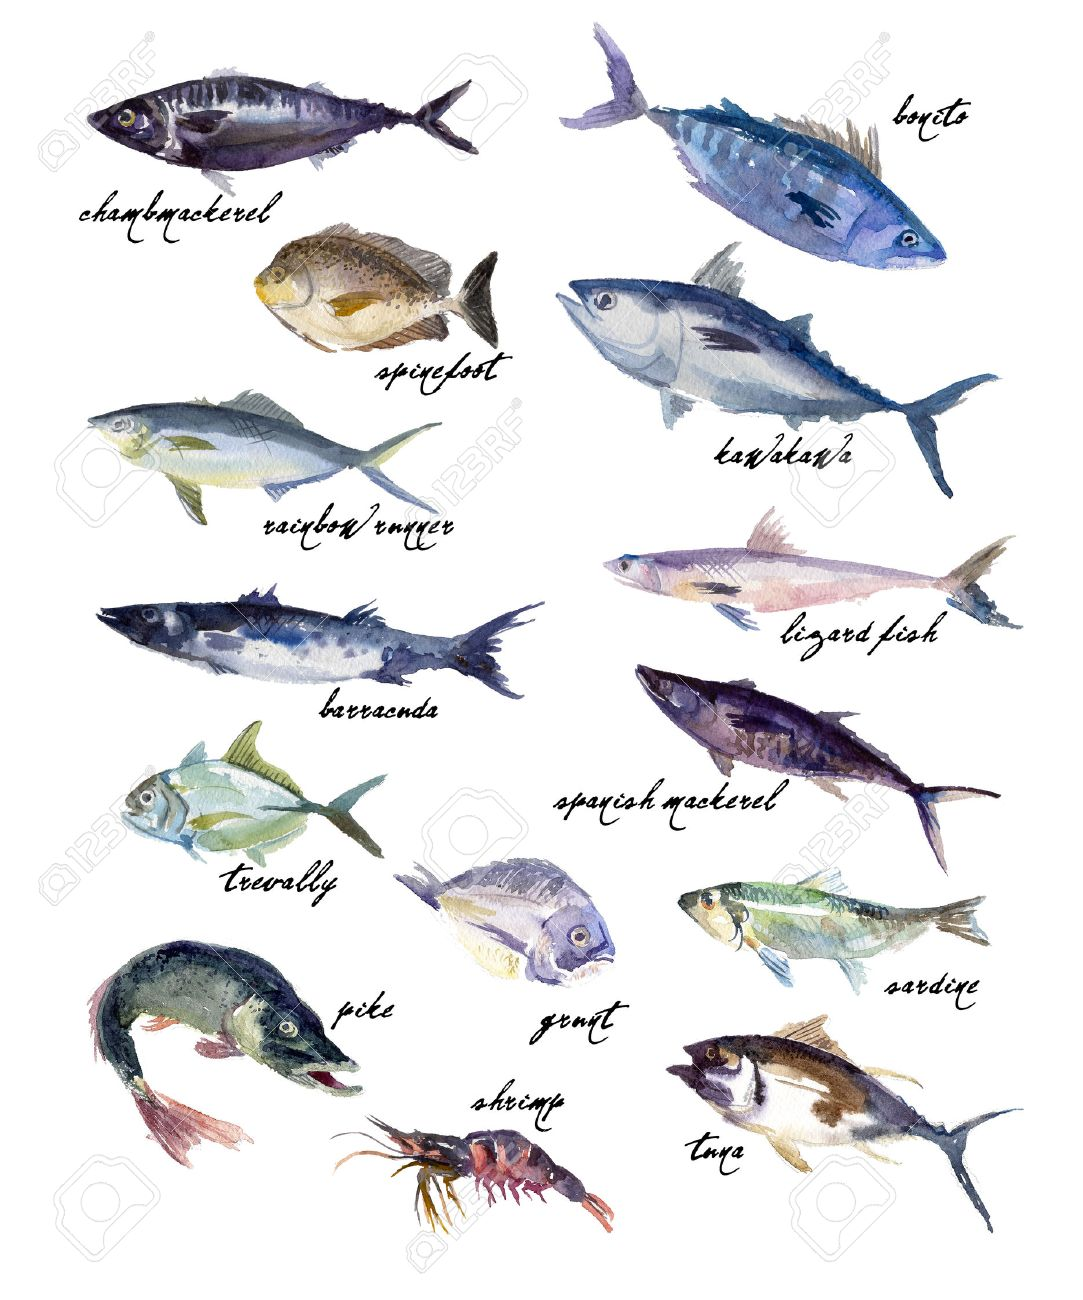 Collection of watercolor hand drawn fish on white background. Good for magazine, menu or book illustration, print design, any graphic design. - 49144343